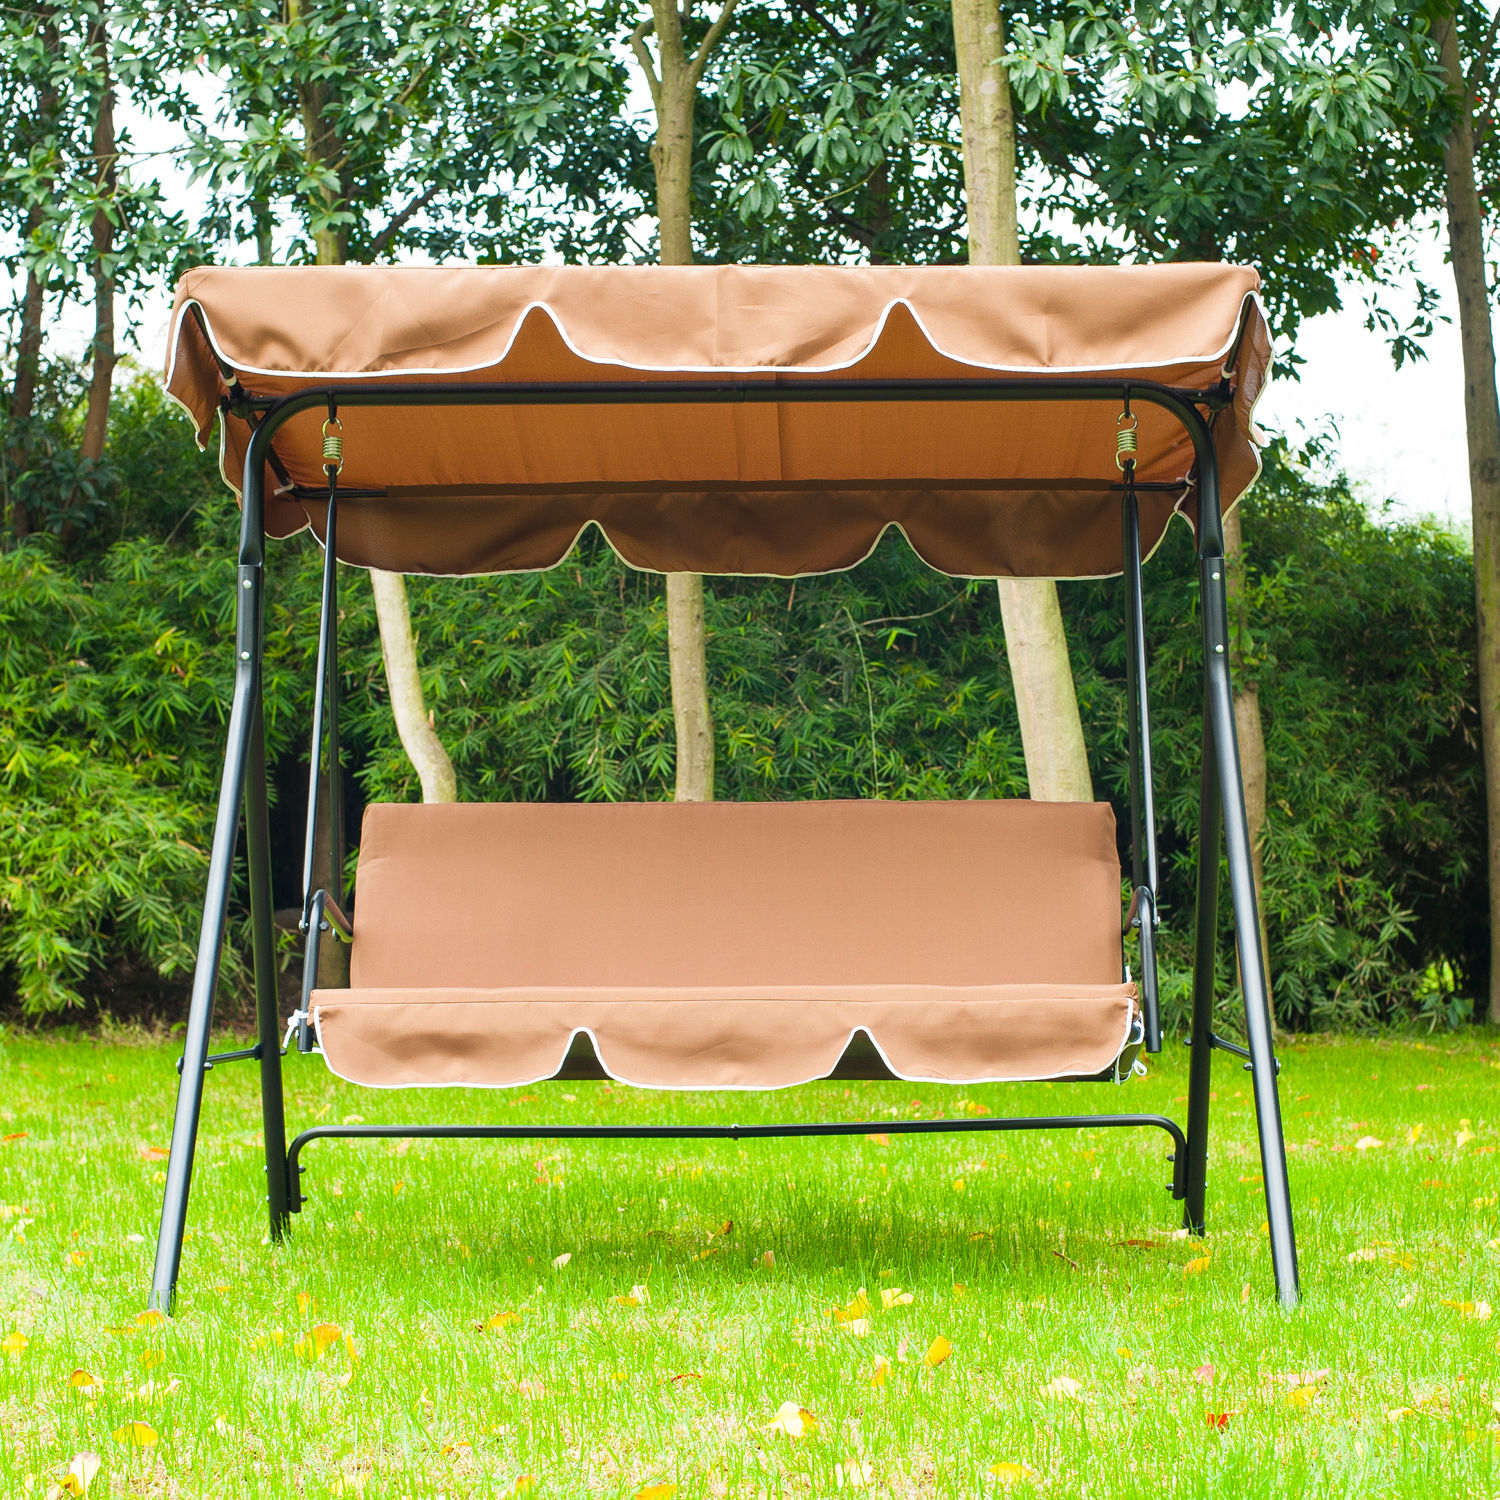 Metal 3 Seater Outdoor Swing Chair Lounger with Frame and ...